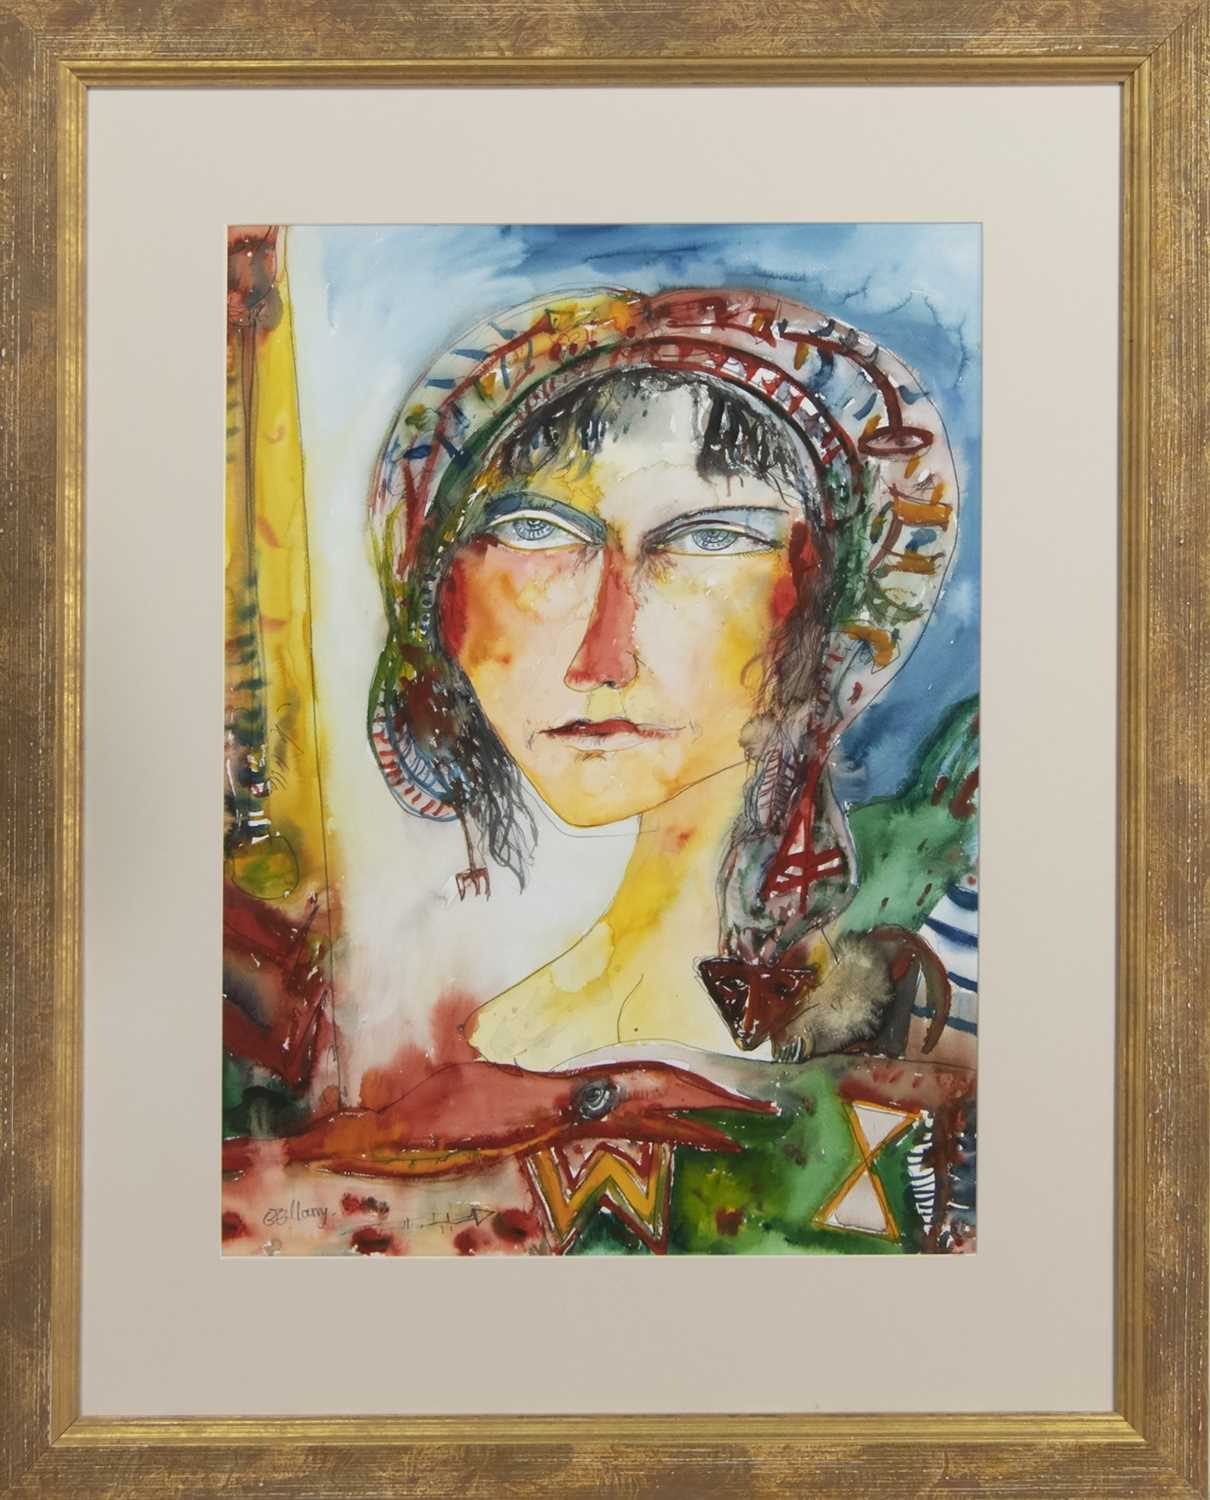 Lot 520 - WOMAN WITH CAT, A WATERCOLOUR BY JOHN BELLANY